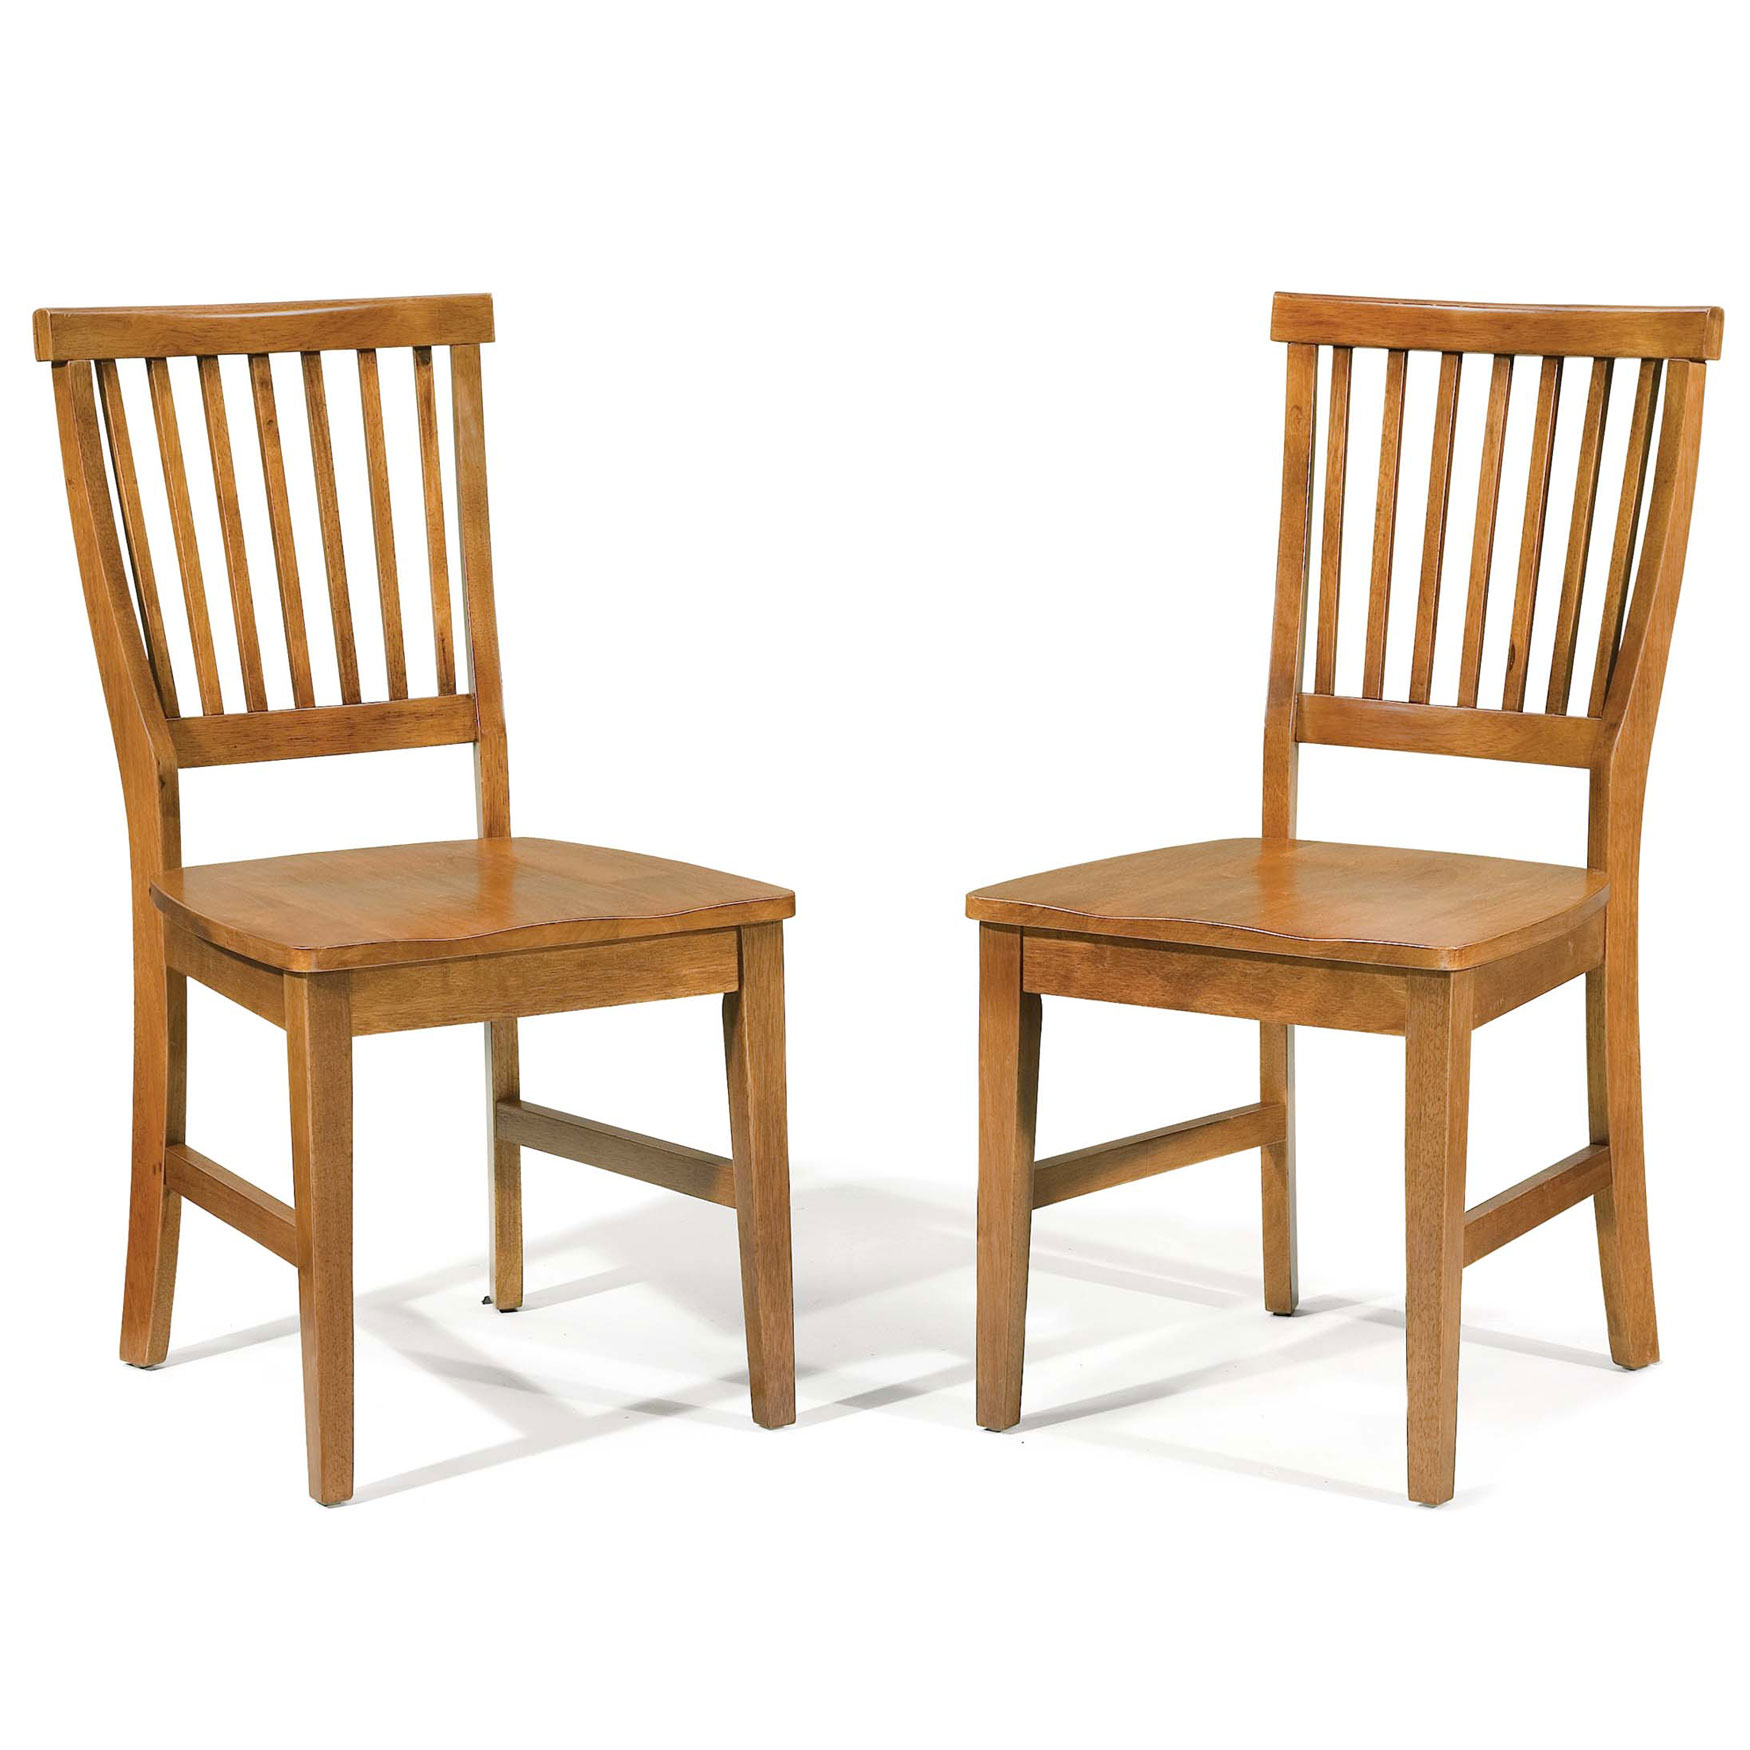 Dining Chairs, set of 2, OAK